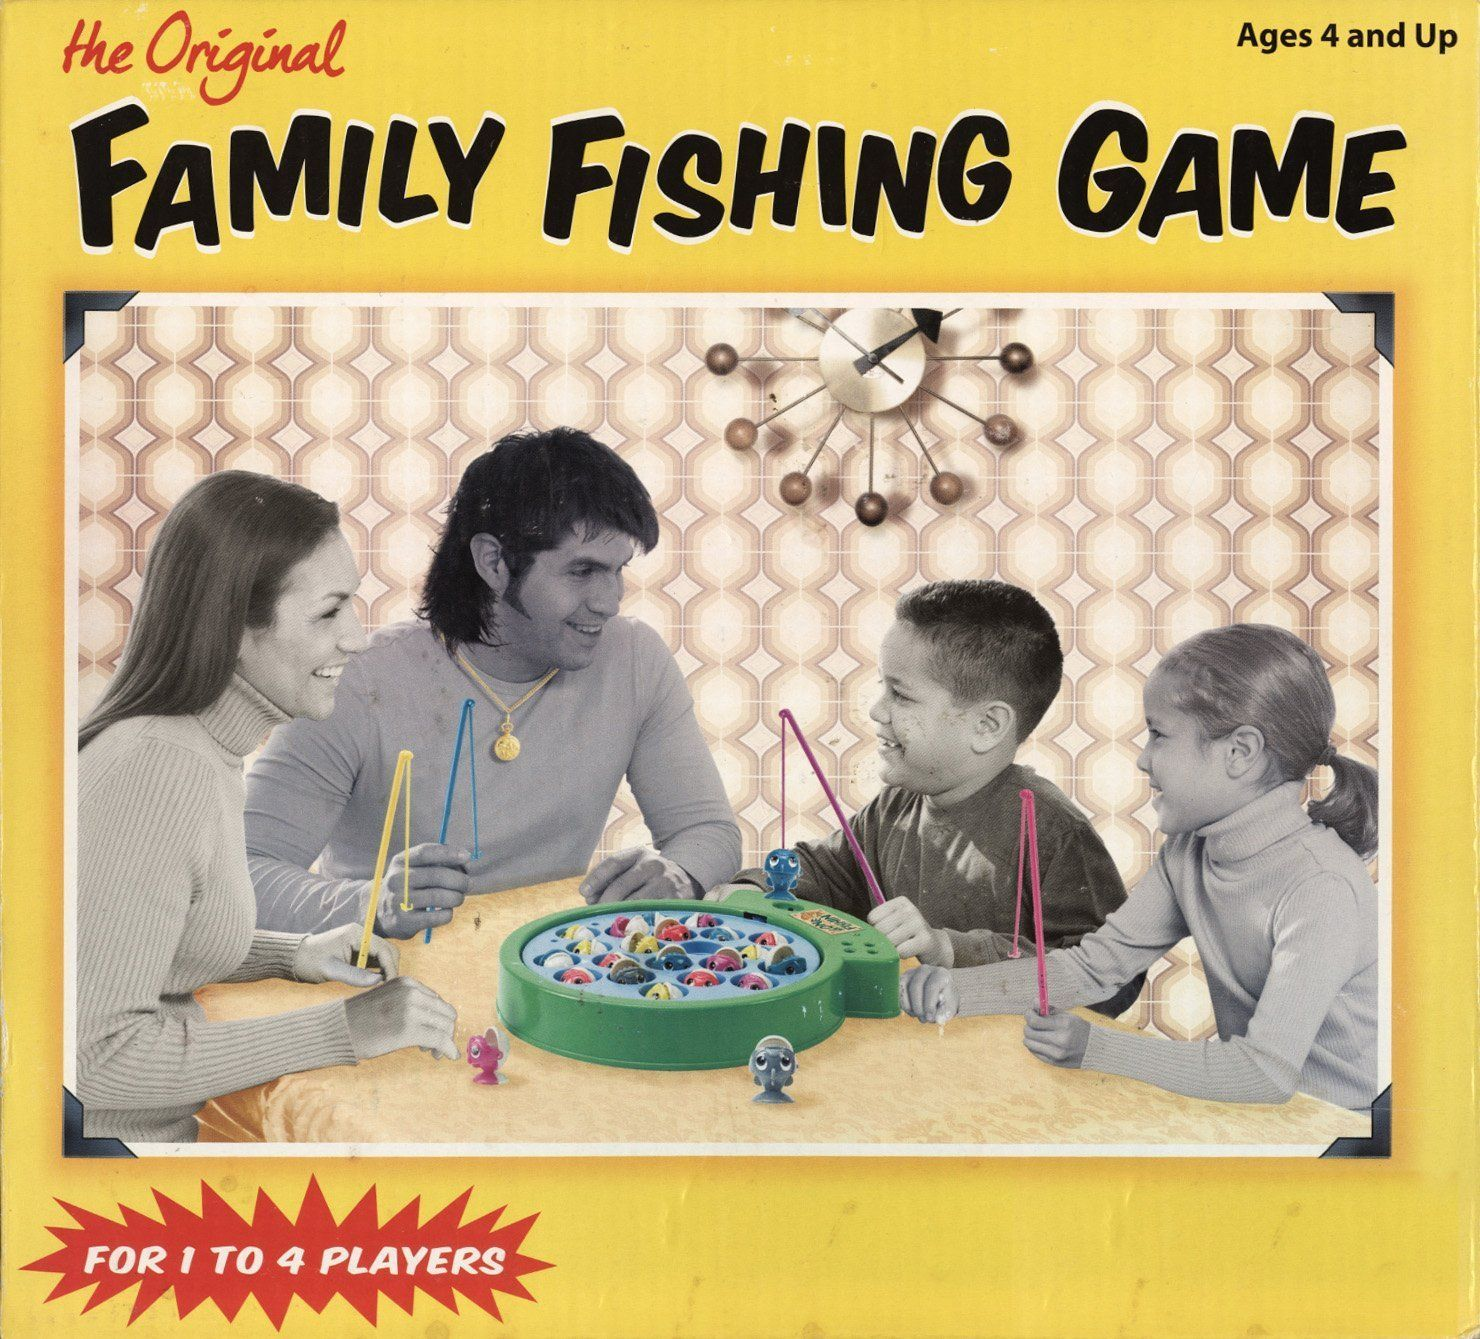 Back by popular demand from the 1970's, the Original Family Fishing Game! The Fish are biting, so just reel them with your fish hook. Our lake spins and the fish pop up randomly for fast fishing fun.